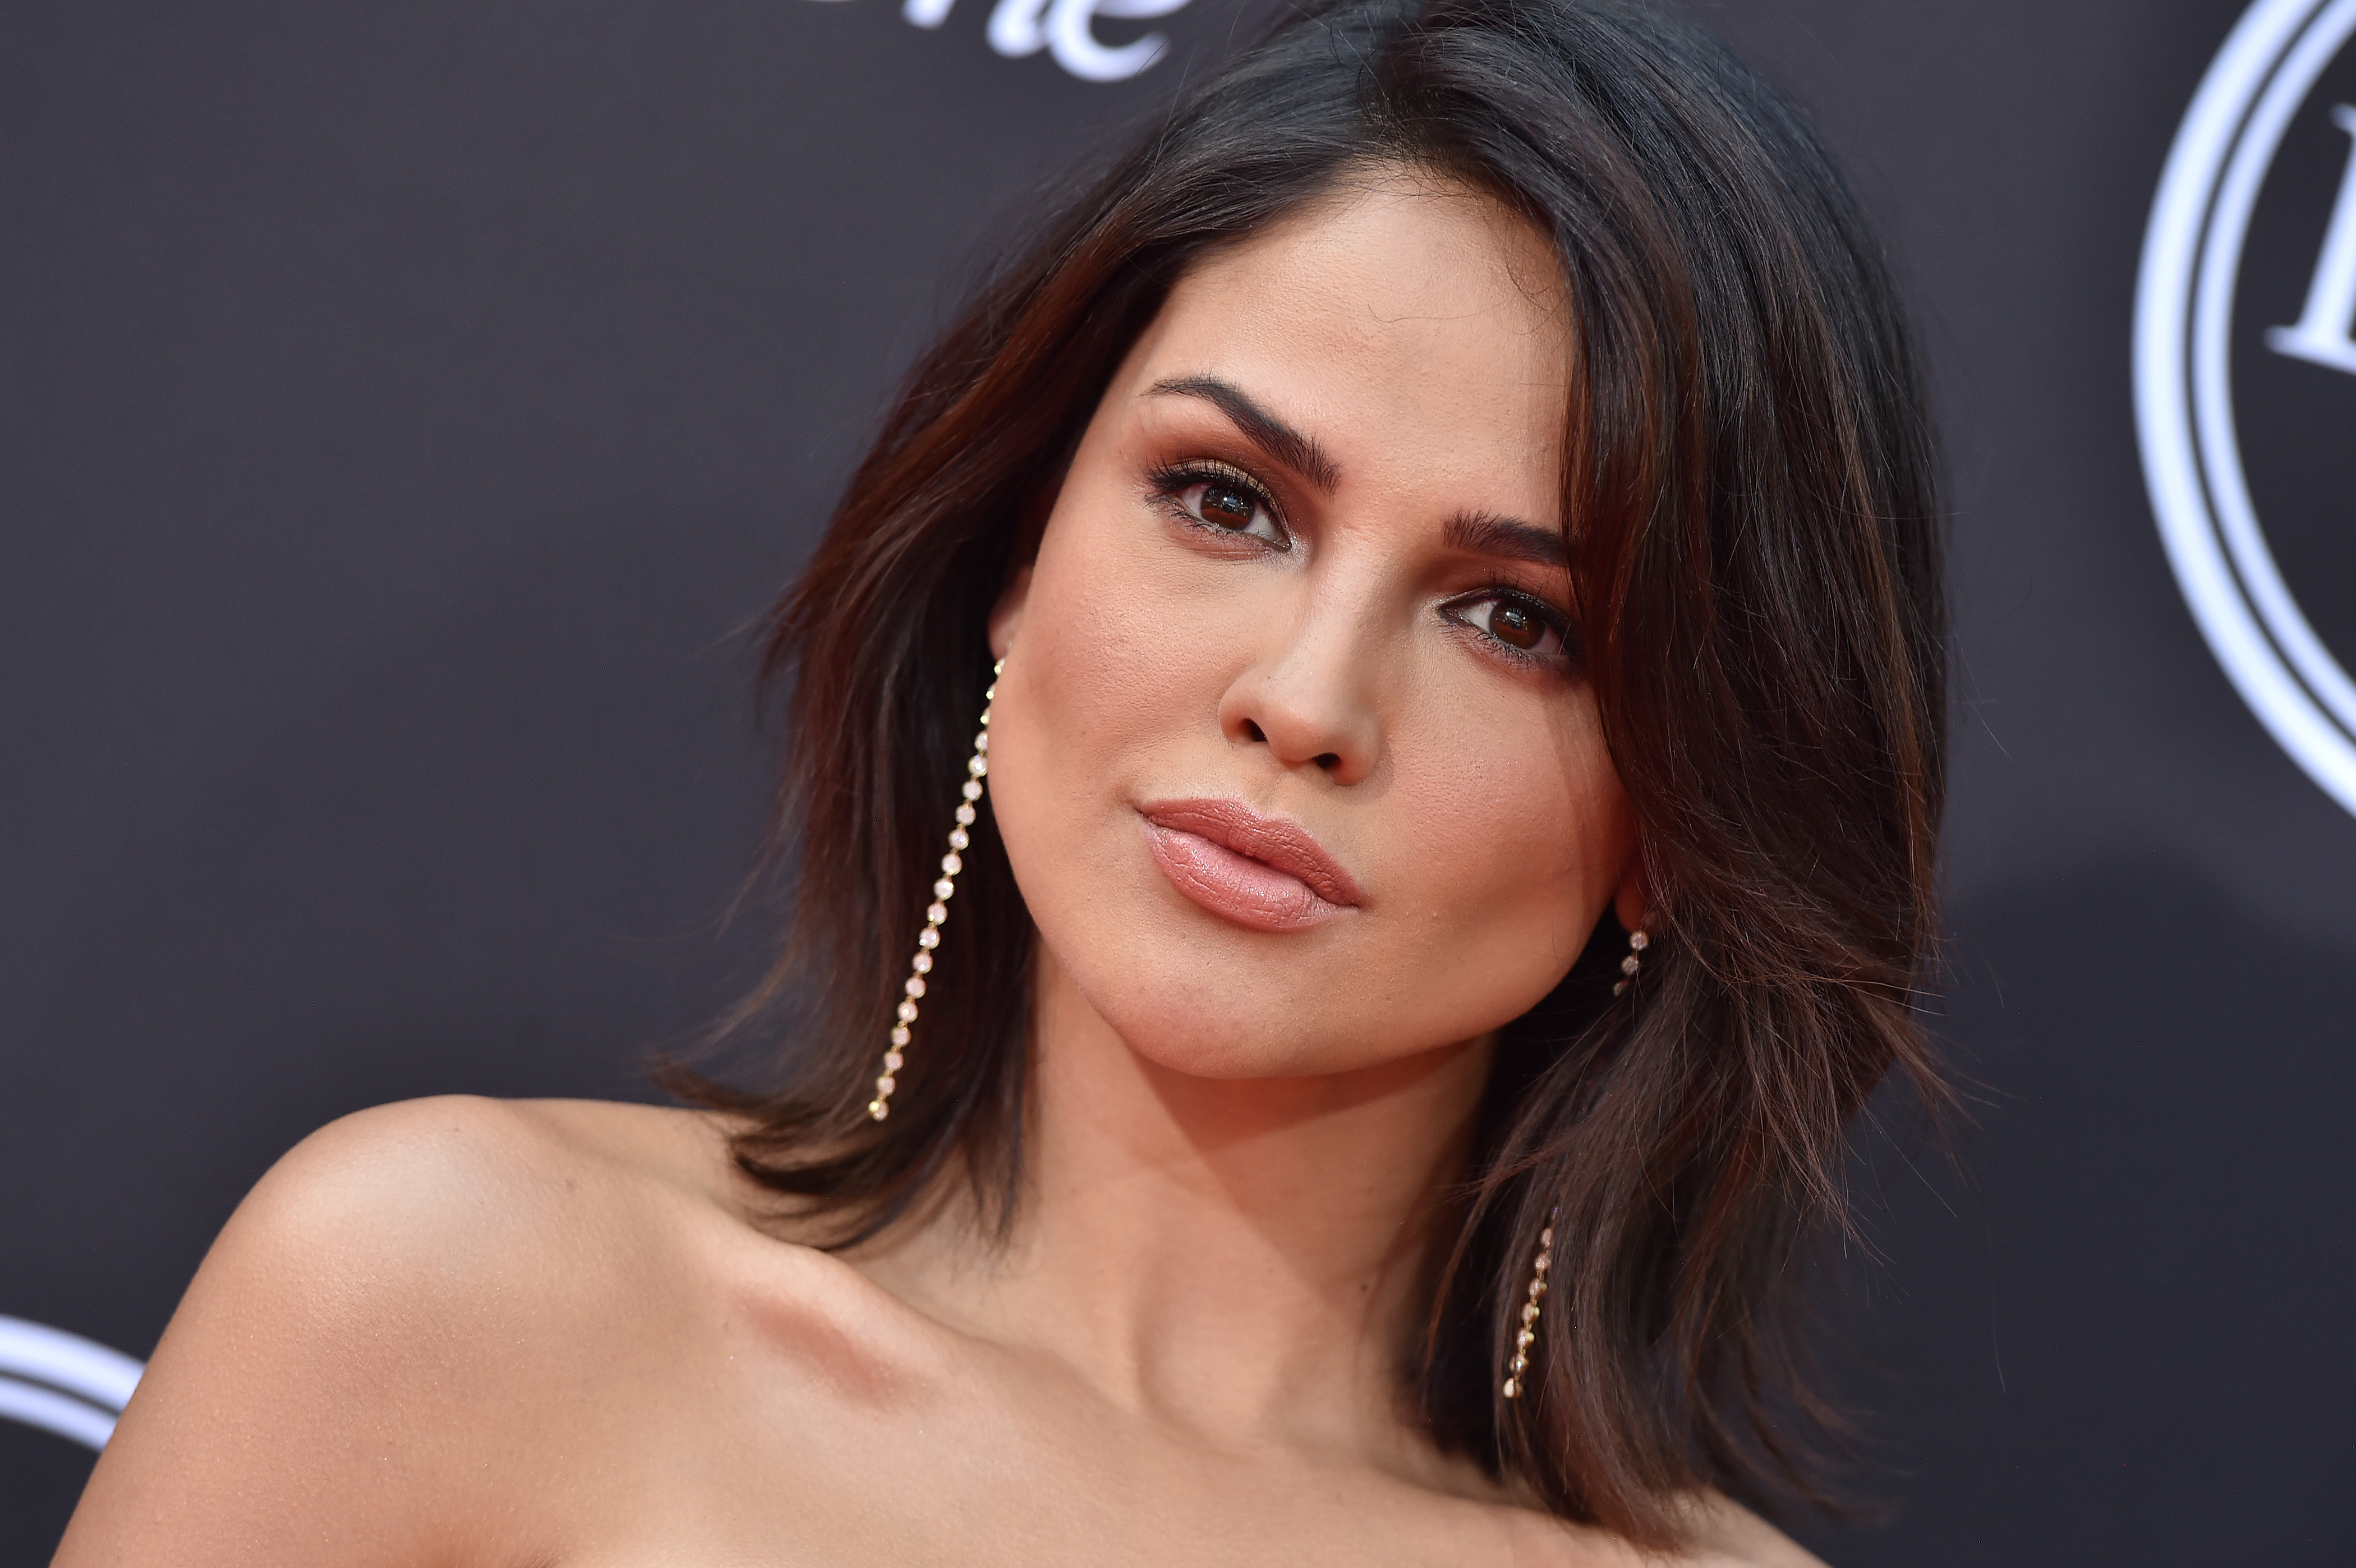 Eiza Gonzalez is 'scared' for her future but determined to represent Latina women in Hollywood